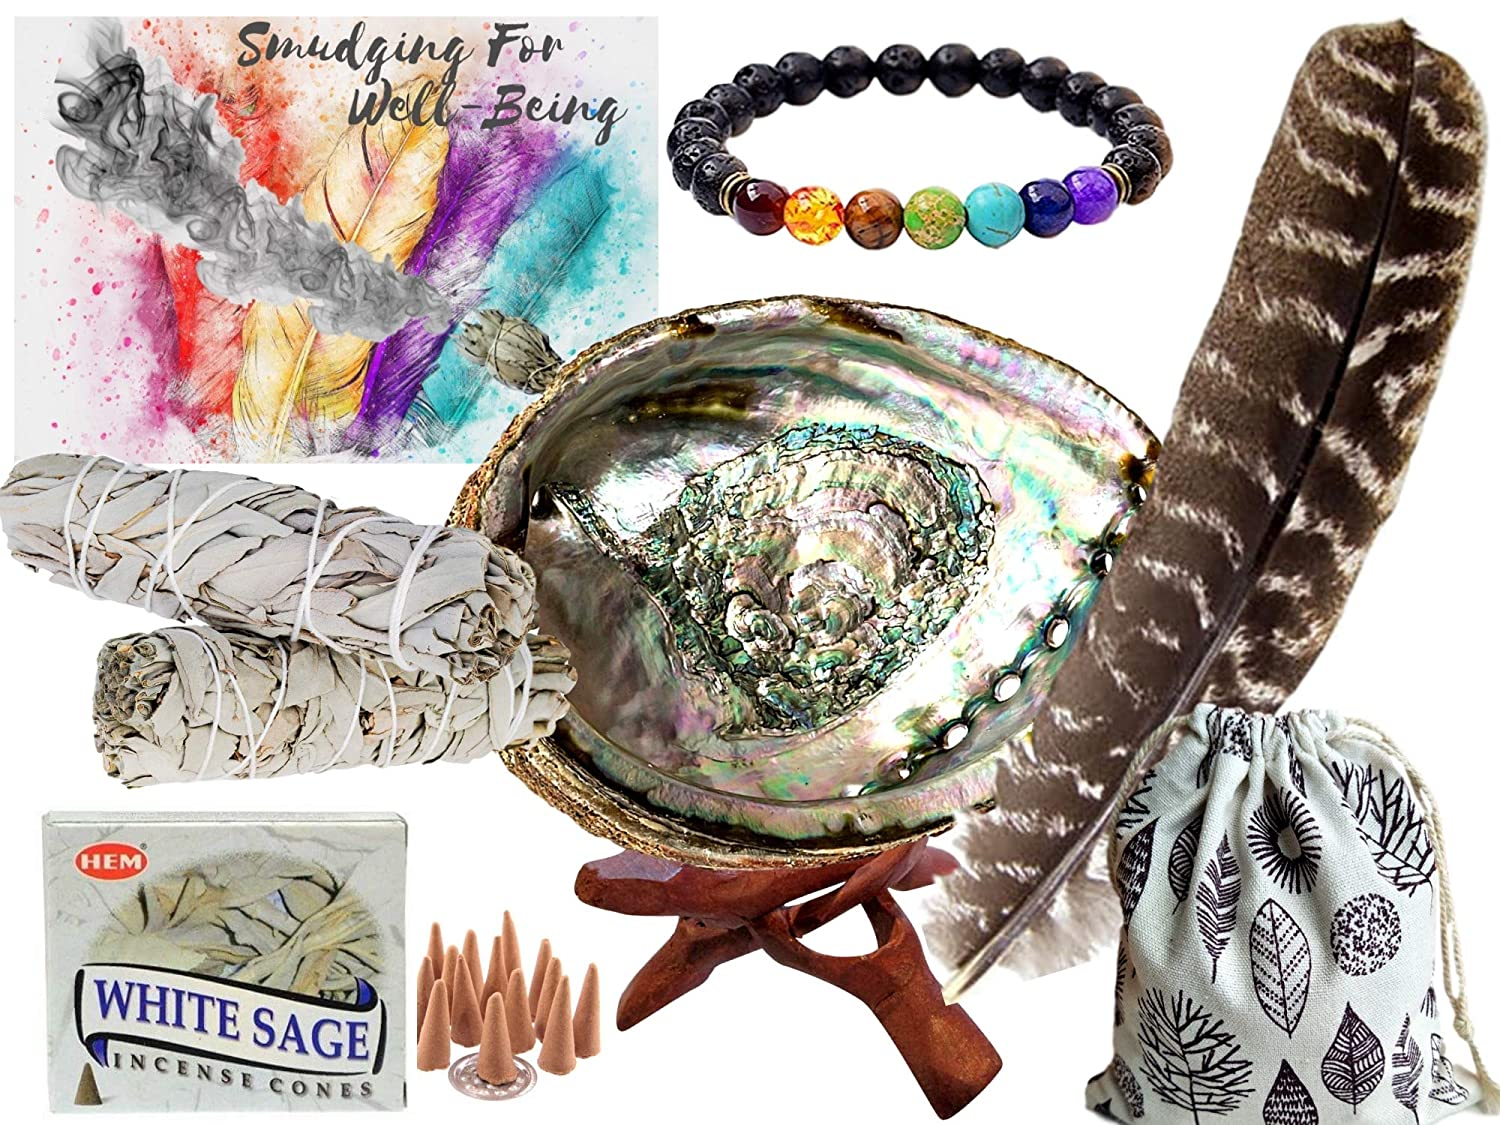 Smudge Kit Spiritual Gifts Set - Large Abalone Shell, Wood Stand, 2 - 4 White Sage Smudging Sticks, Sage Incense Cones, Feather, 7 Stone Chakra Bracelet (Unisex) - Complete Gift Set & Positive Vibes Daily World Finds